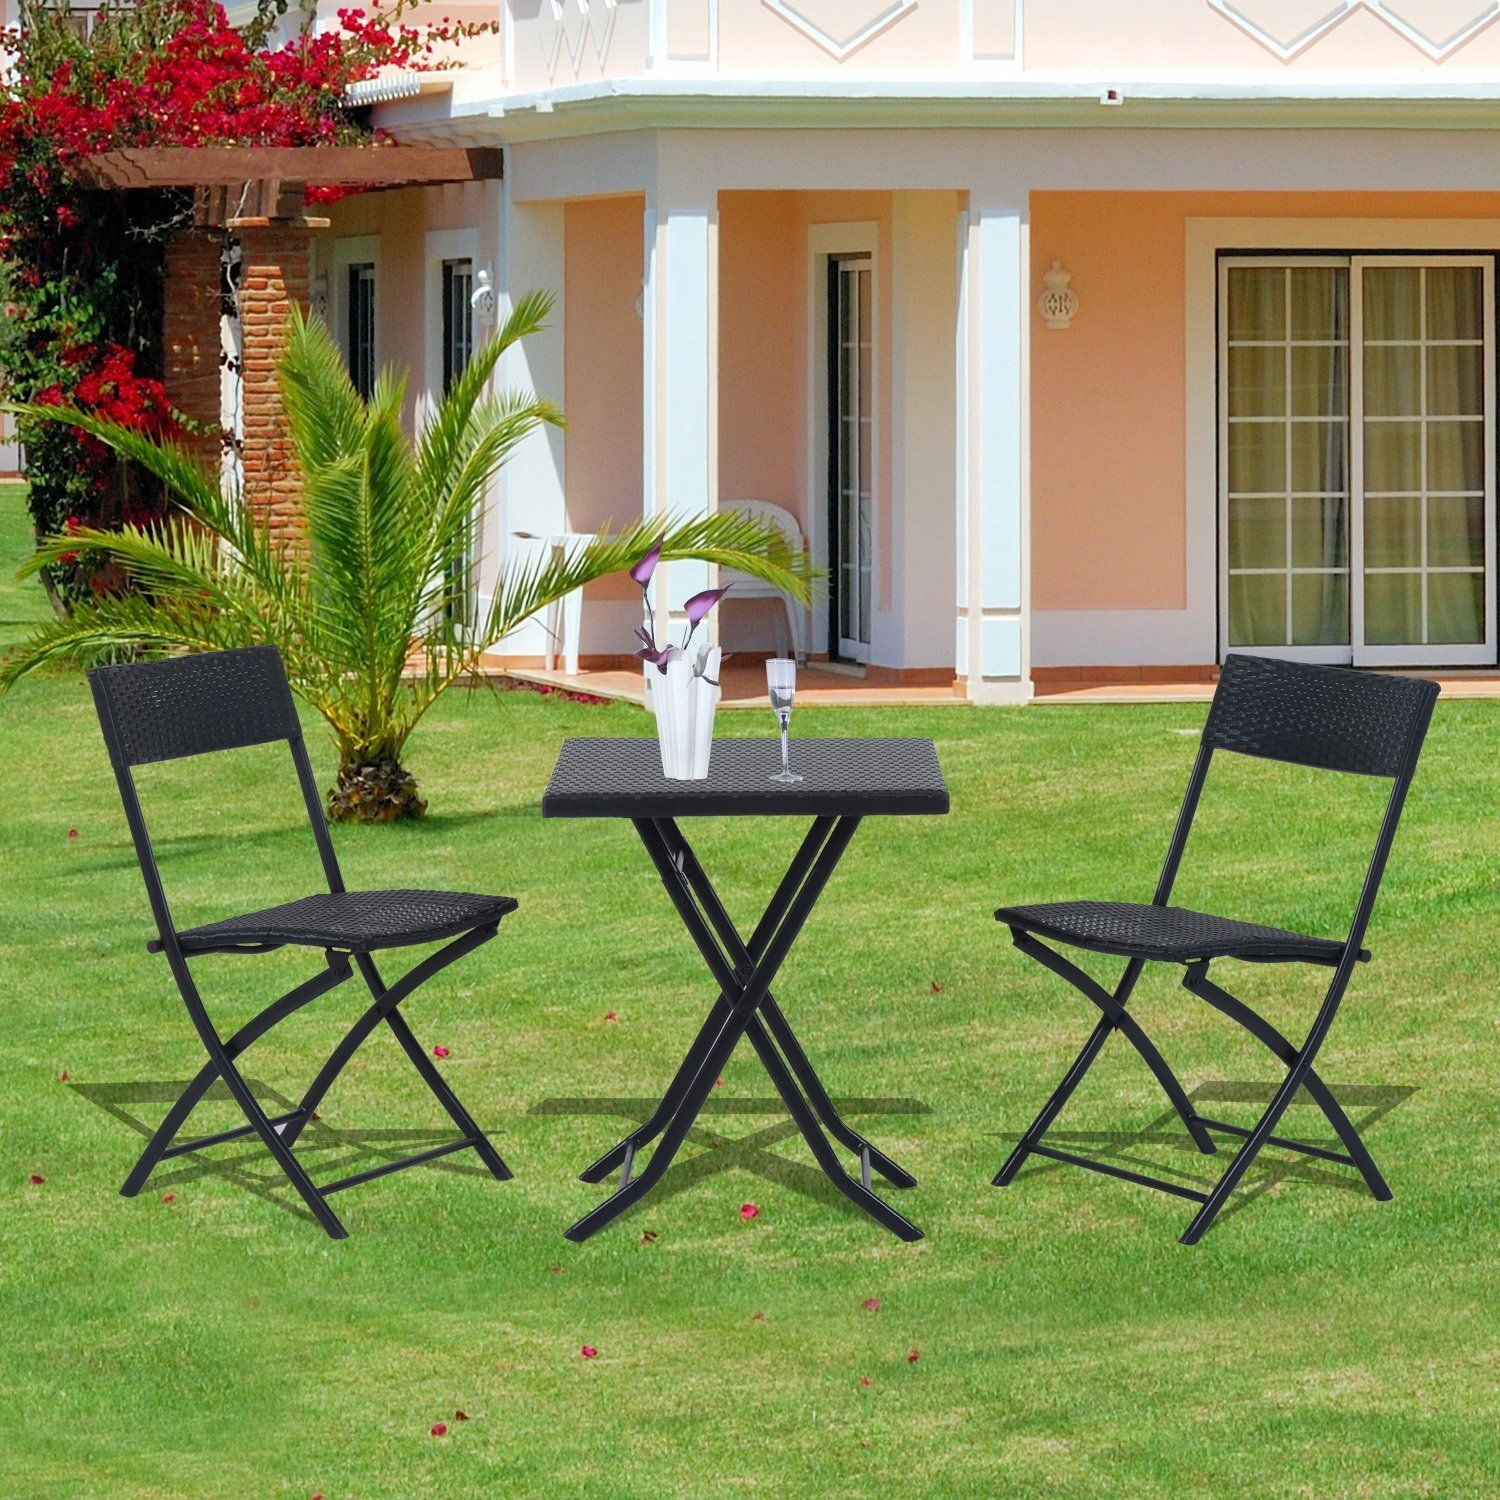 Outsunny Rattan Garden Furniture Bistro Set Outdoor Patio